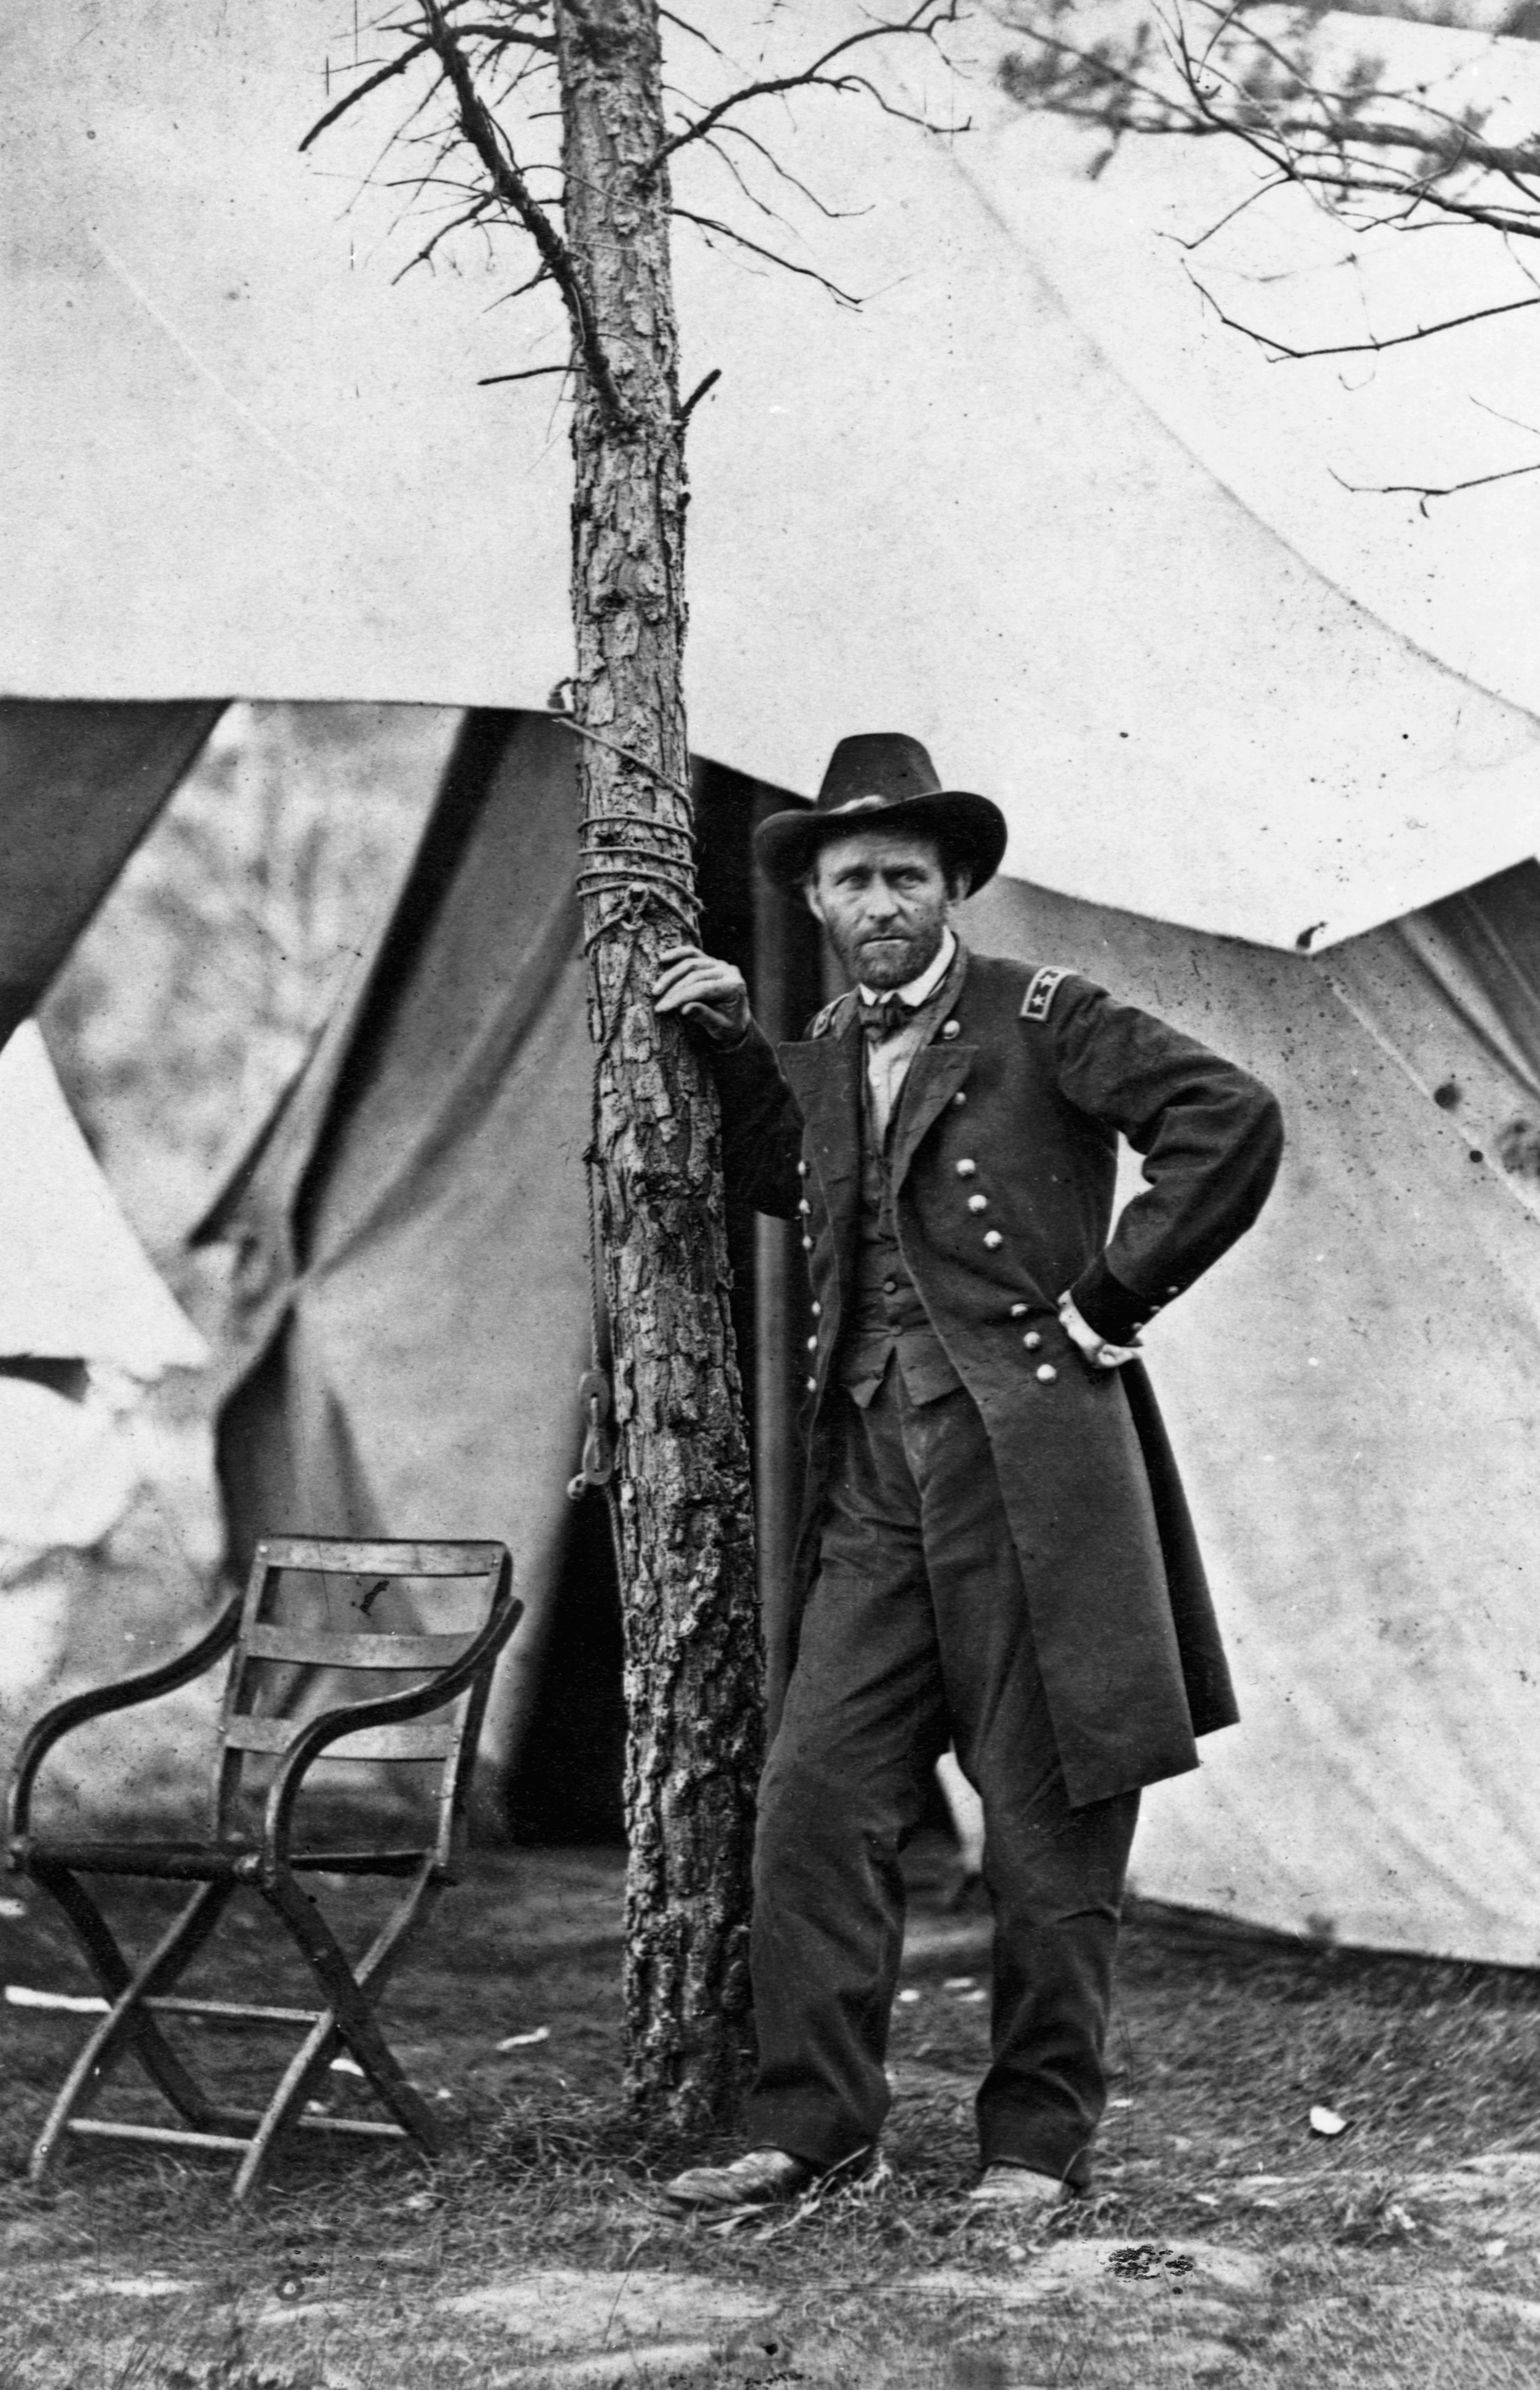 ulysses s grant wearing military uniform union military leaders  ulysses s grant the union army union military leaders the civil war